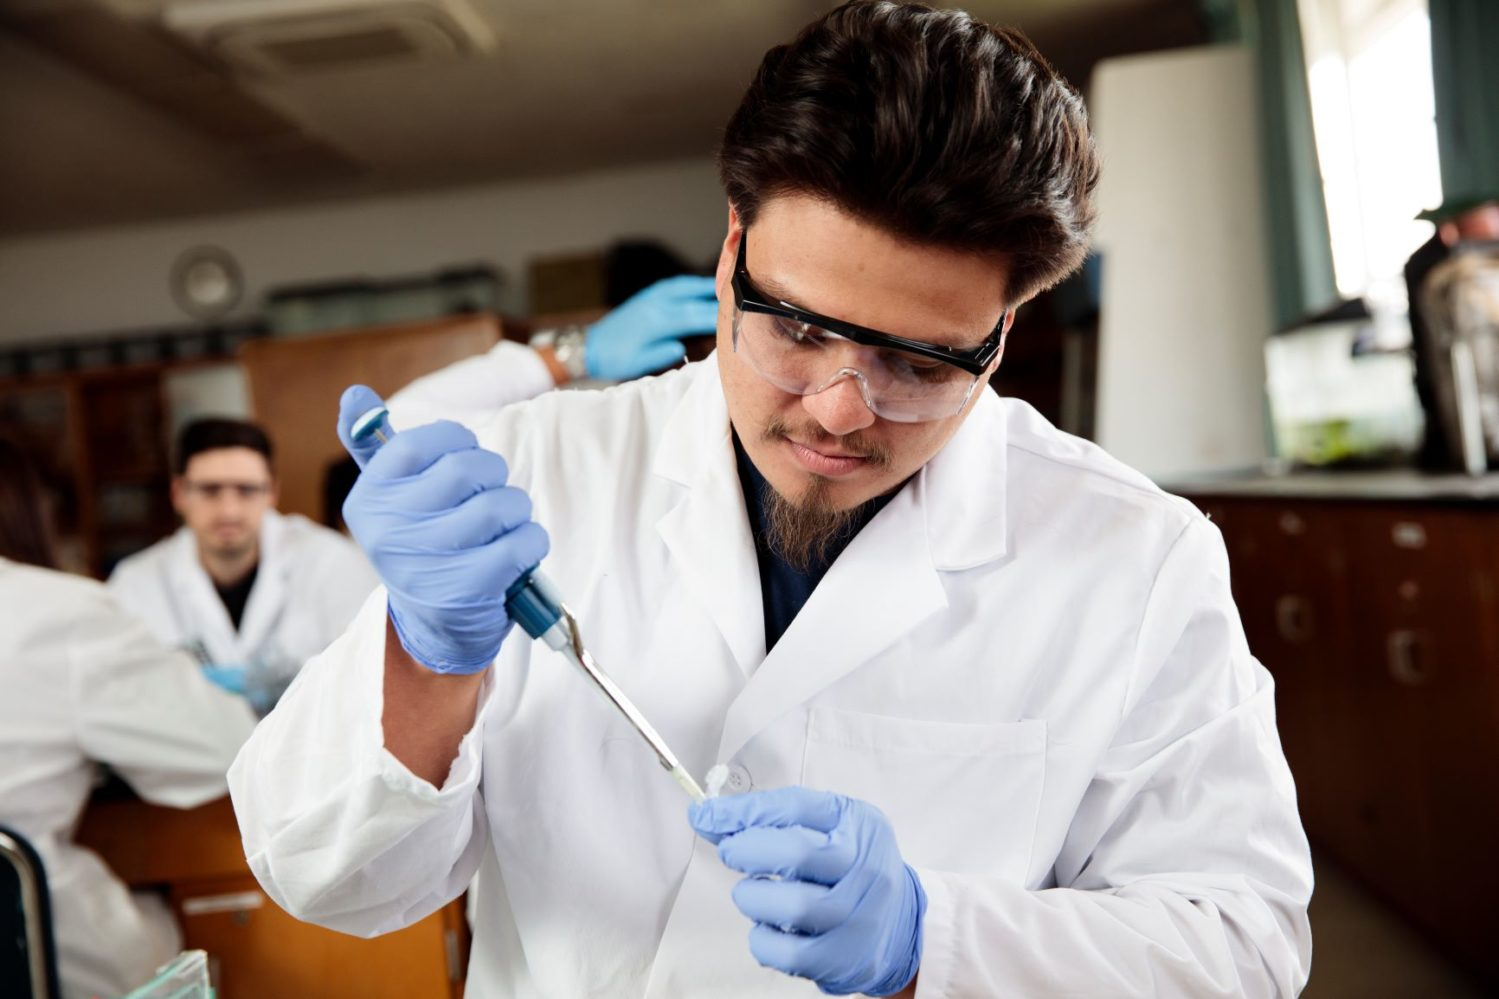 university student in lab